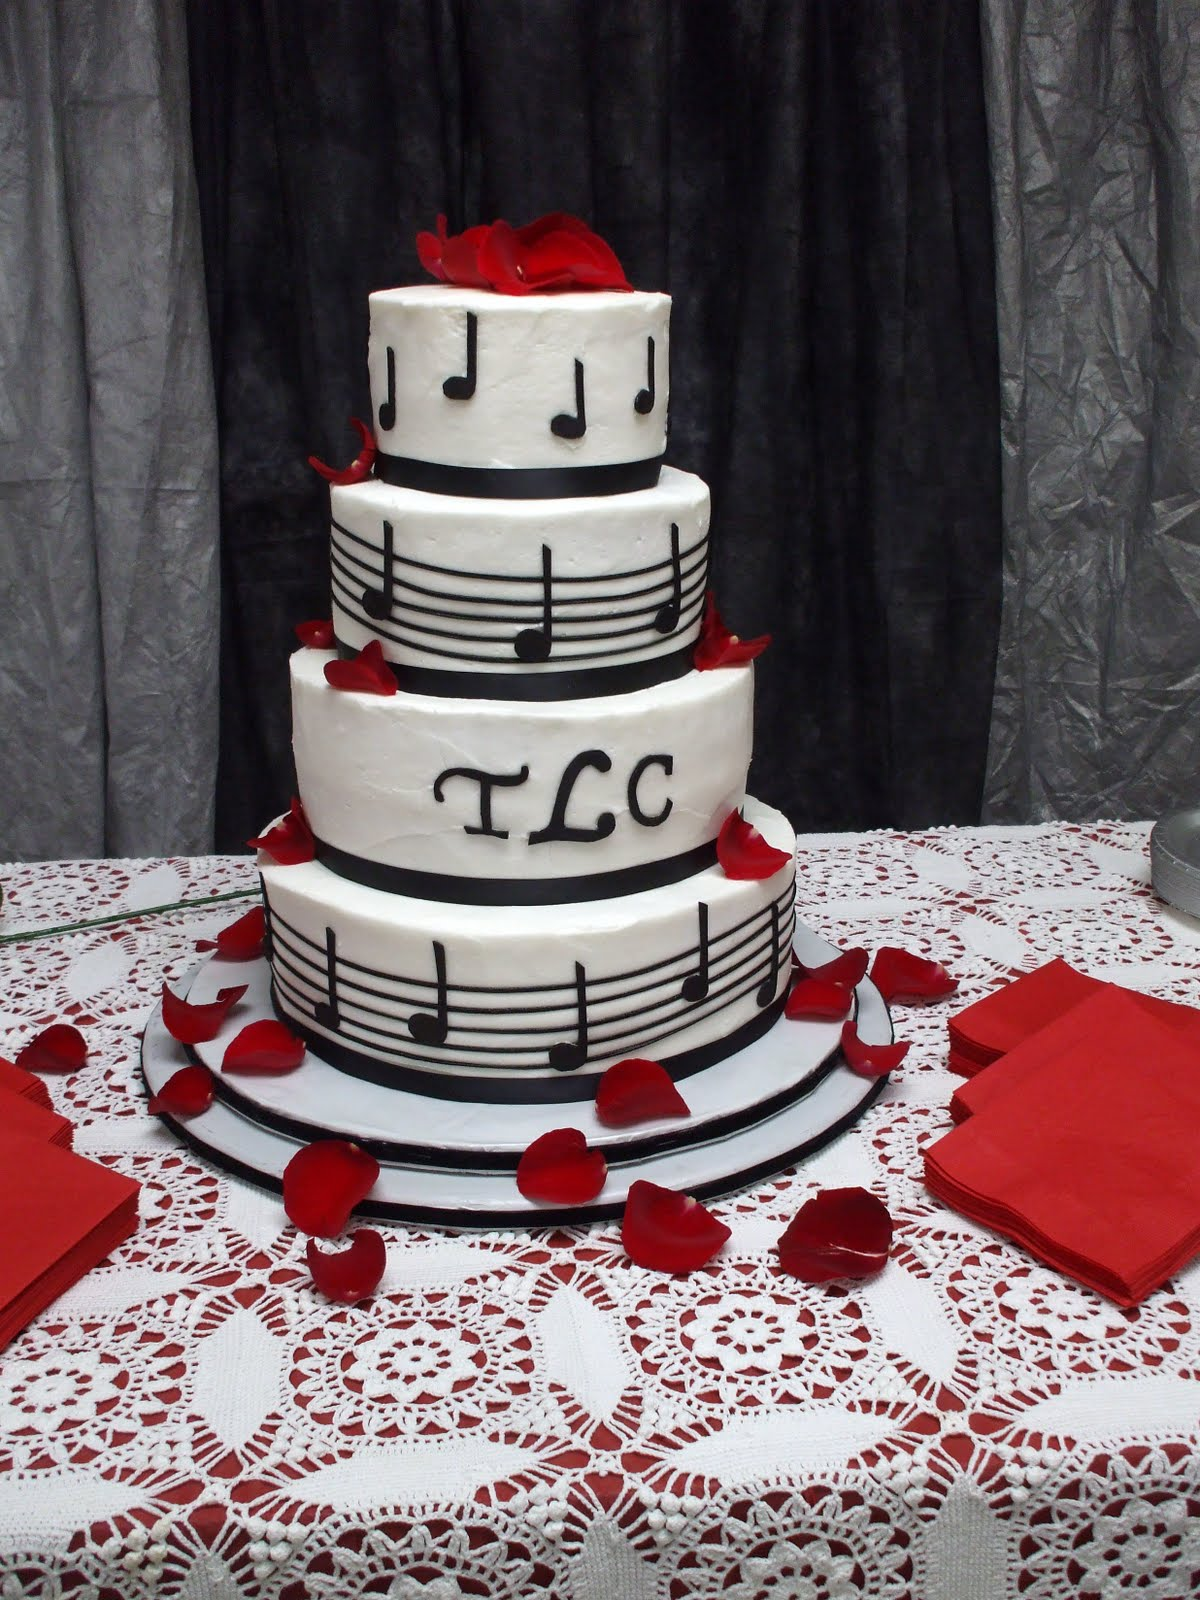 The Simple Cake Music Themed Wedding Cake